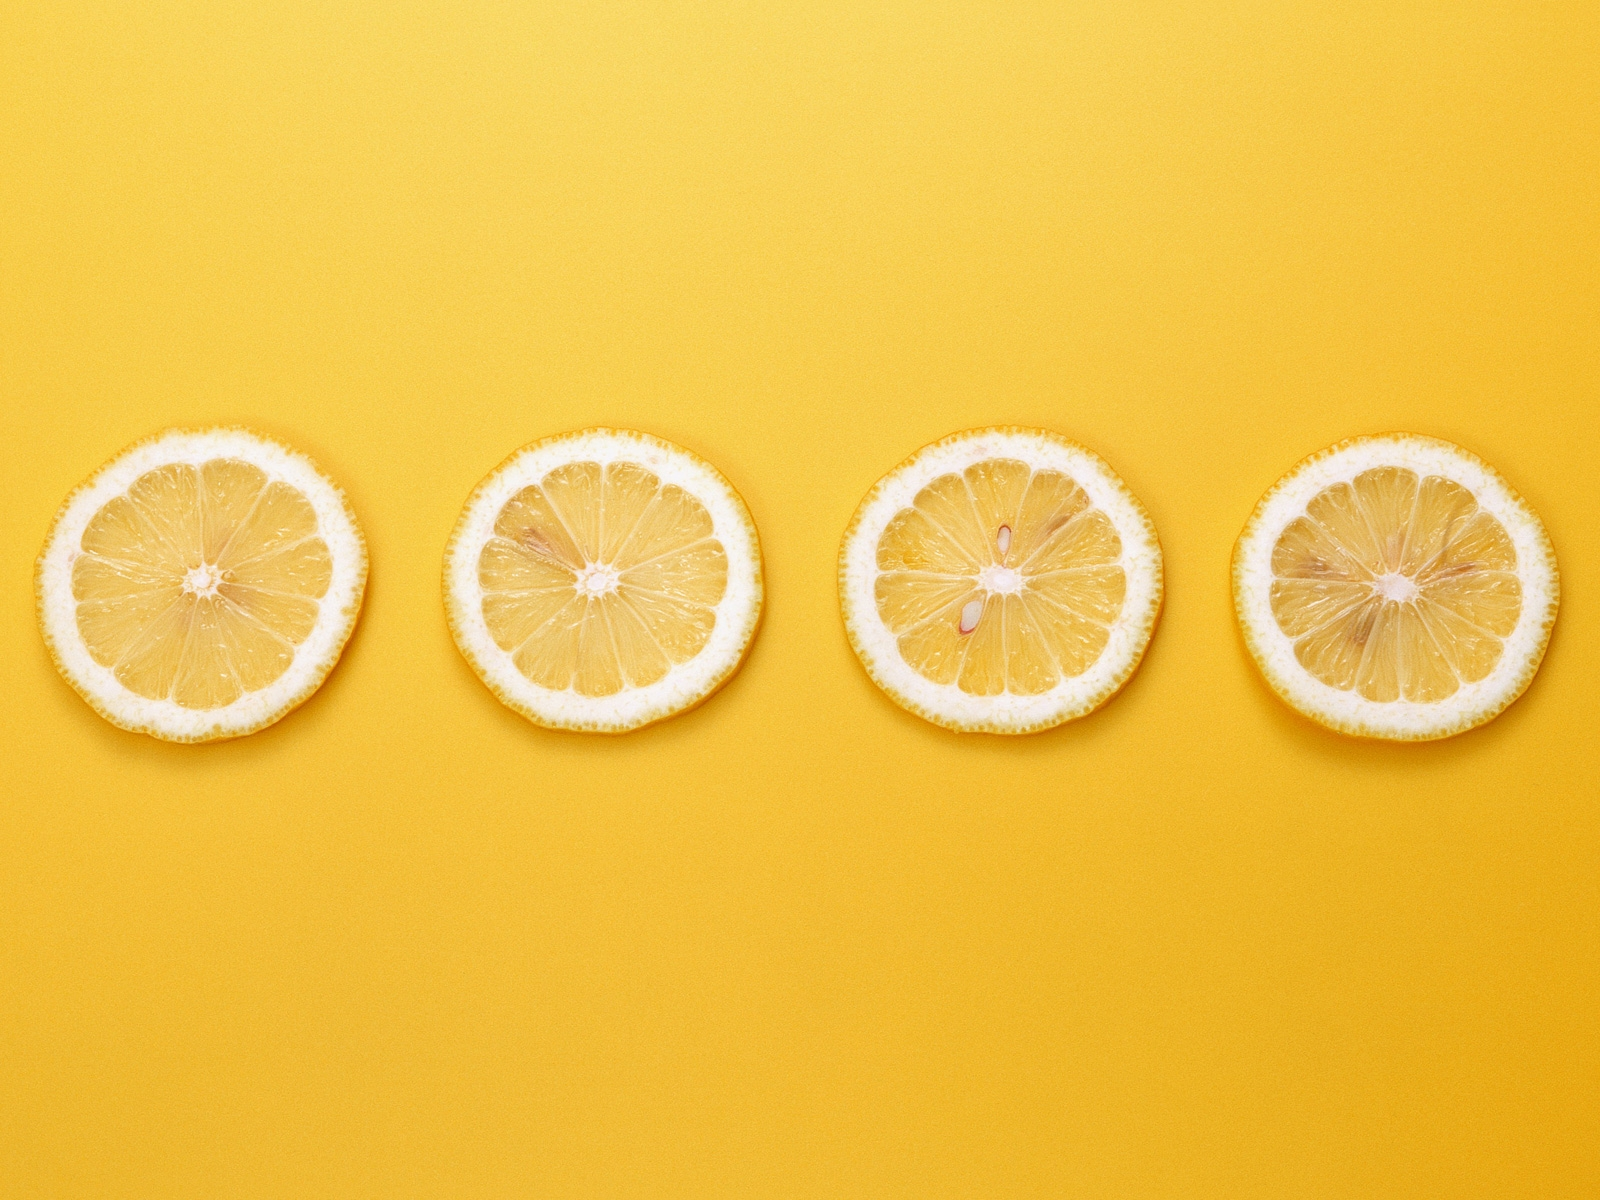 click to free download the wallpaper--Cute Fruits Wallpaper, 4 Lemons in a Line, Yellow Background, Incredible Scene